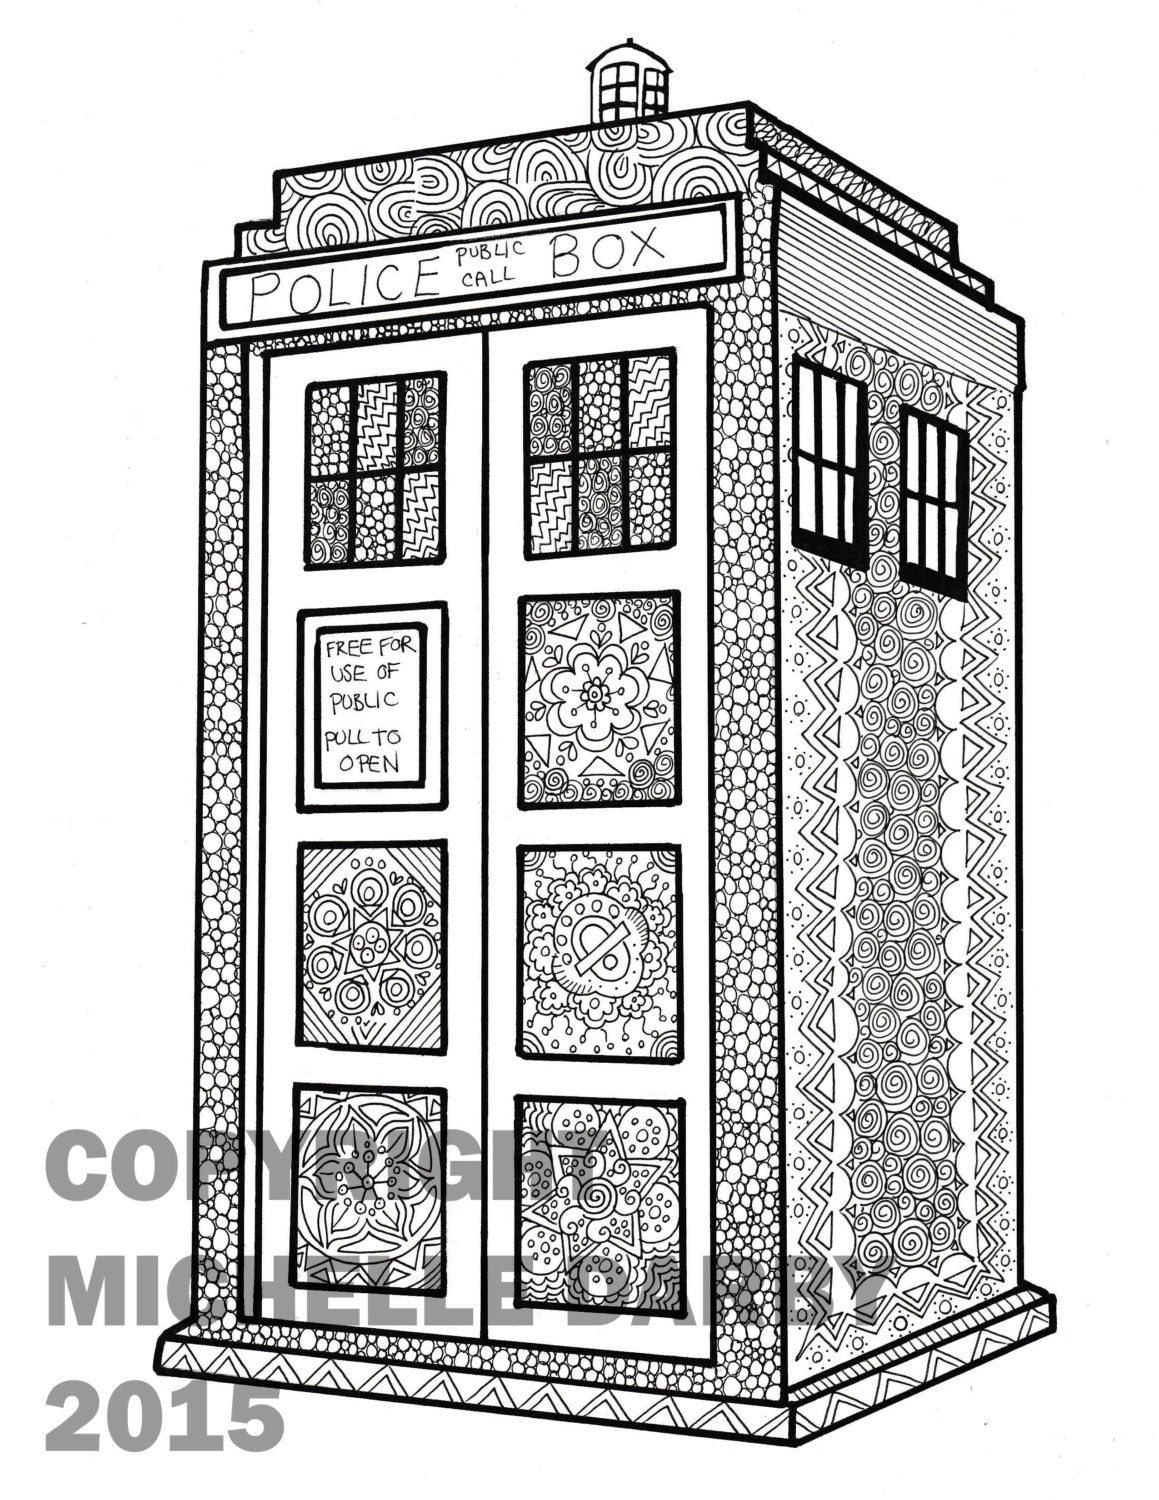 tardis coloring pages - photo#9